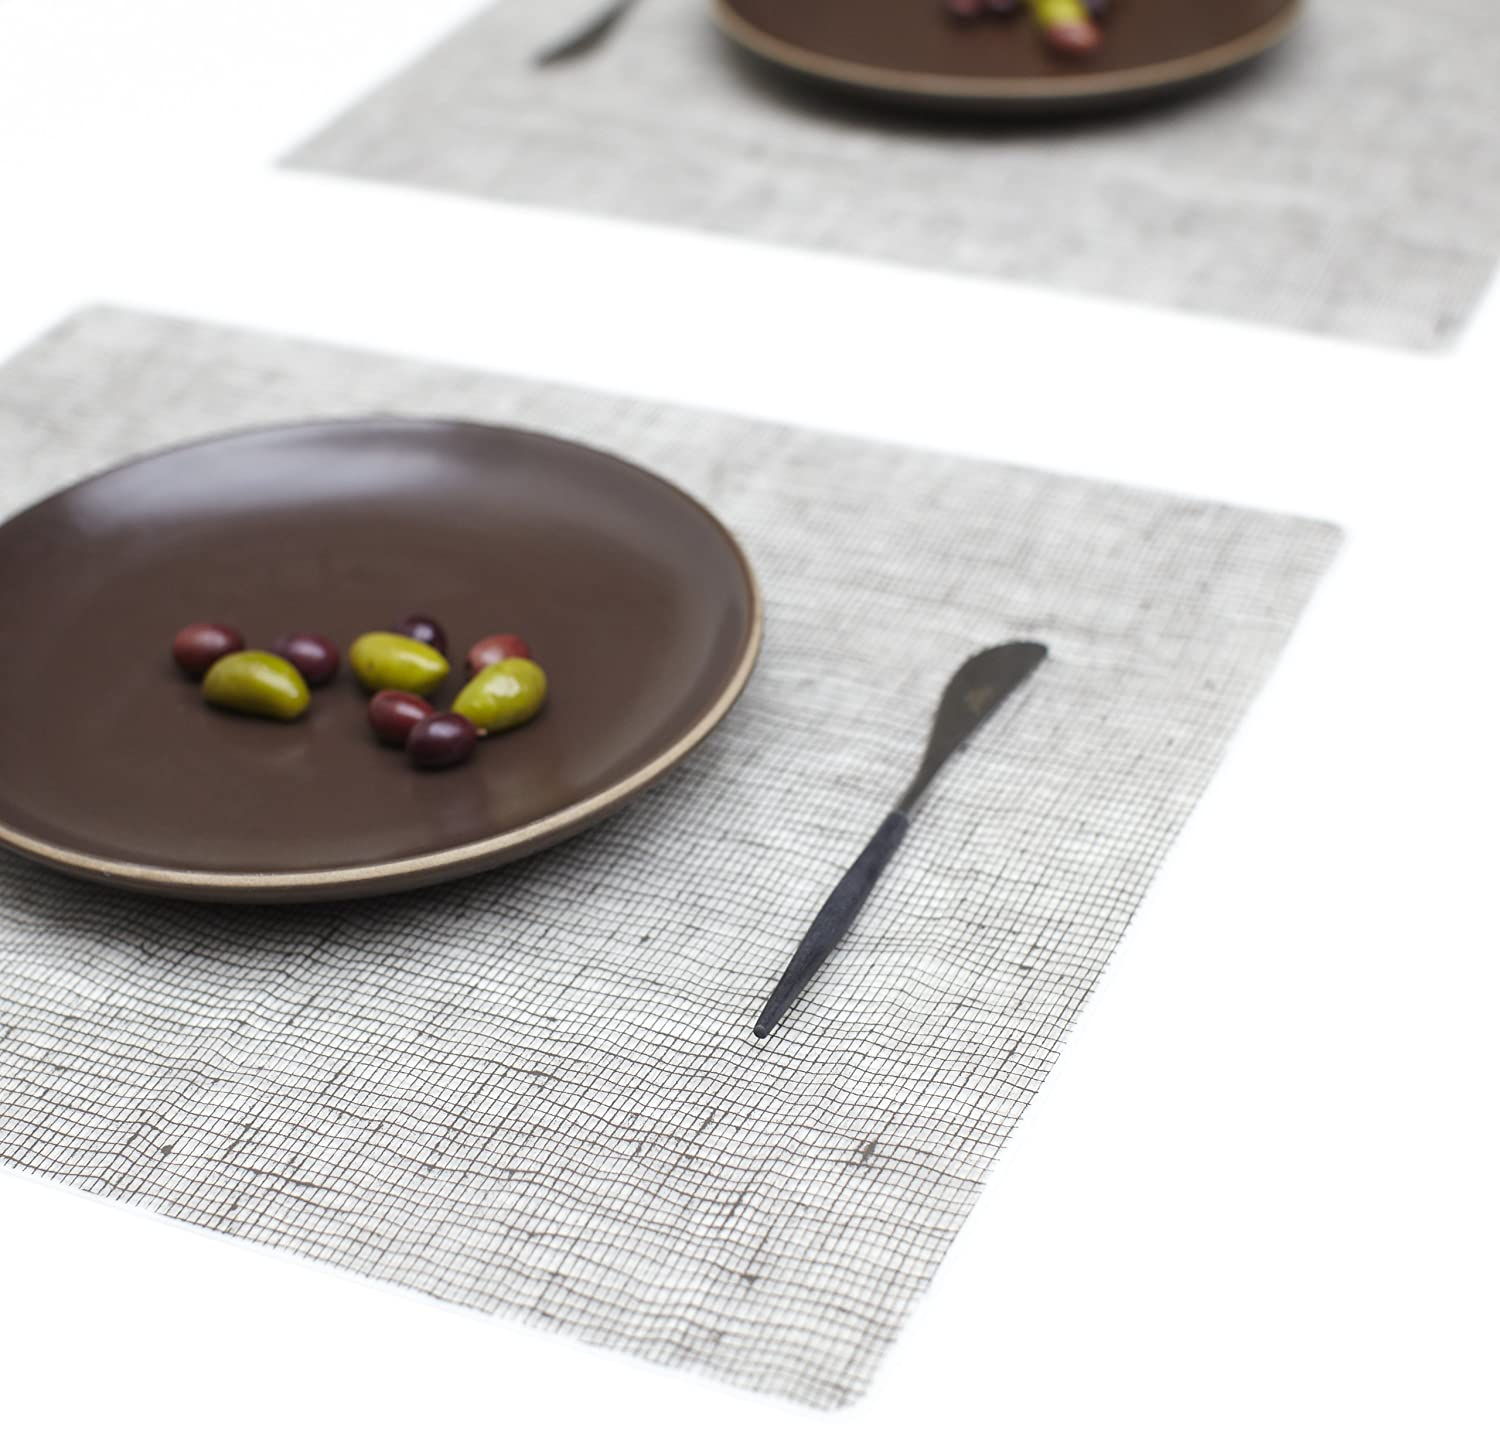 Moderntwist Silicone Placemat, Linen, Chocolate , New, Free Shipping